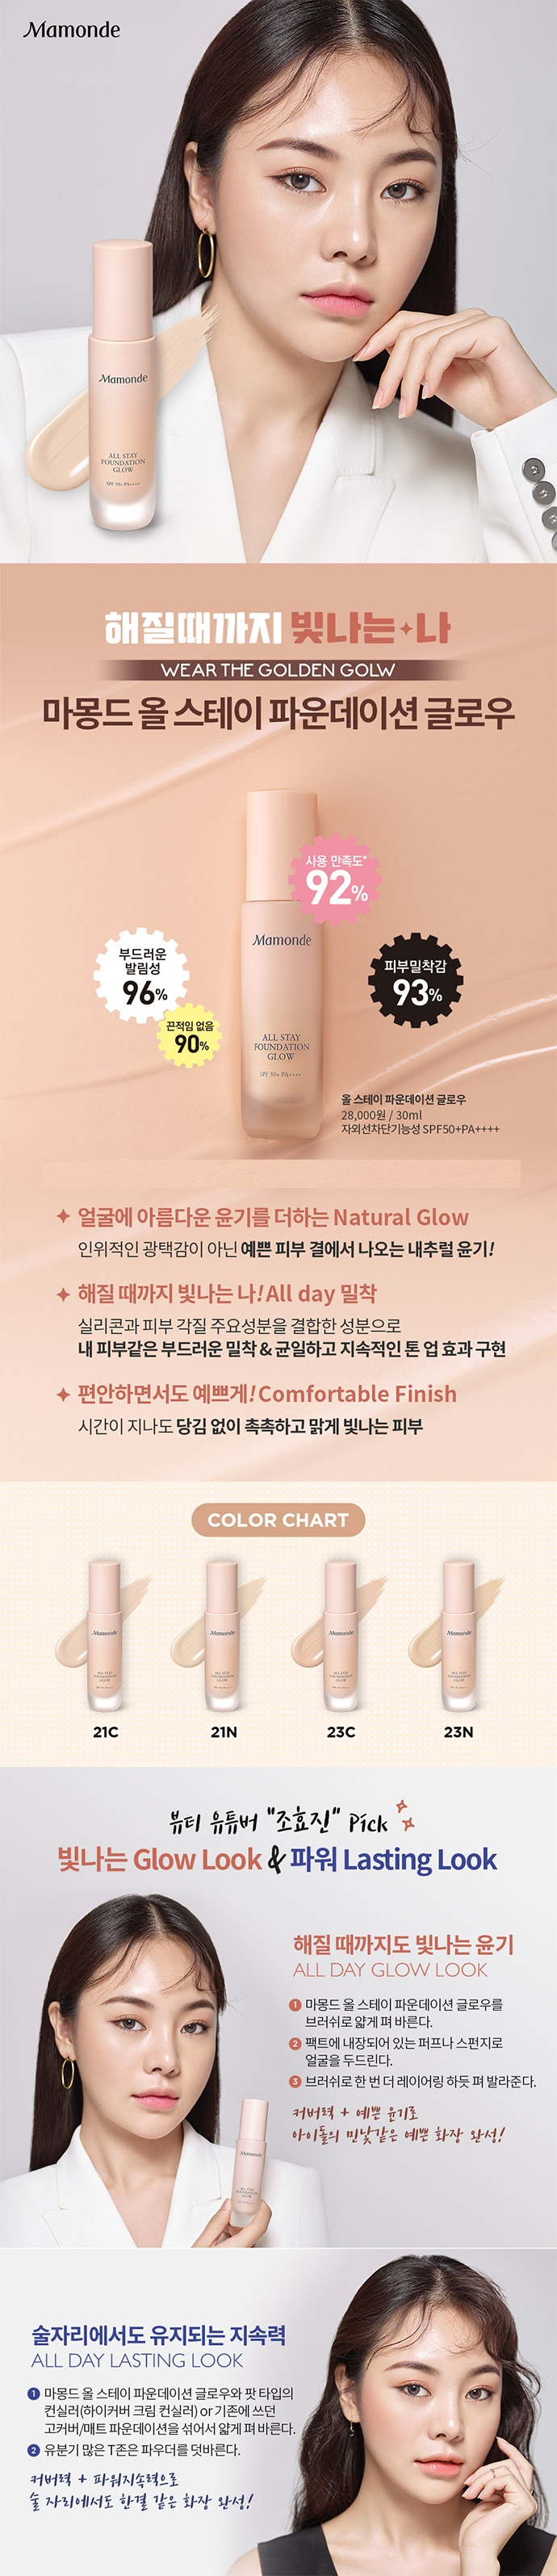 Mamonde All Stay Foundation Glow korean cosmetic skincare product online shop malaysia China taiwan